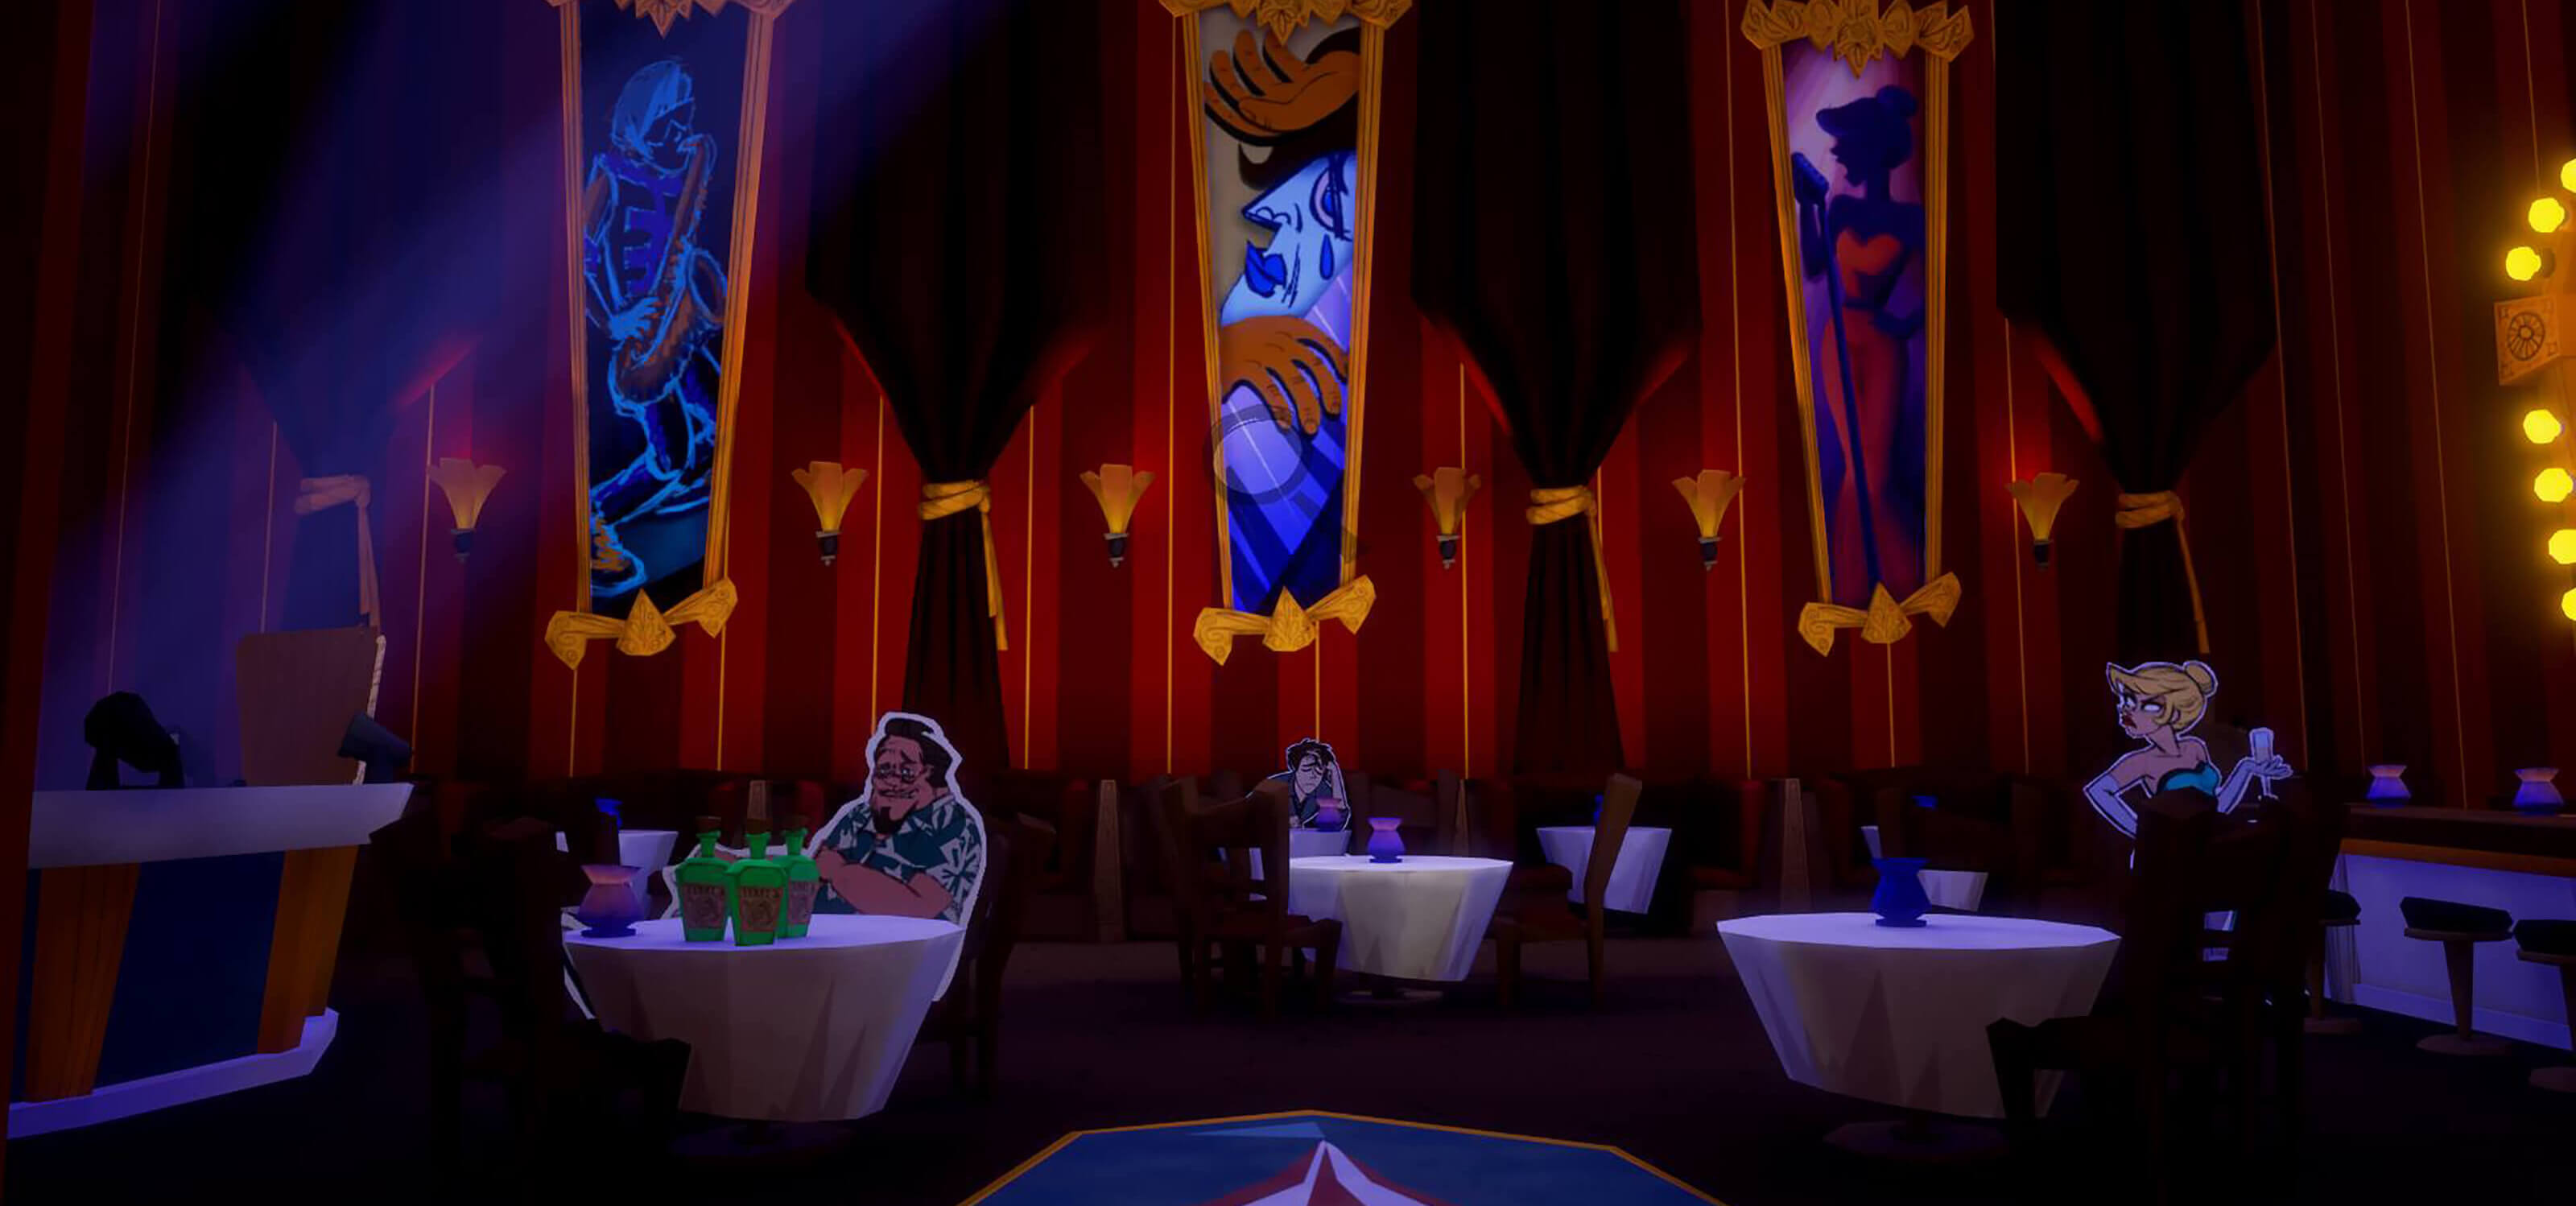 Screenshot from Penny Blue Finds a Clue featuring characters Terry Crisp, Zeke Spade, and Miss Betty in a large banquet hall